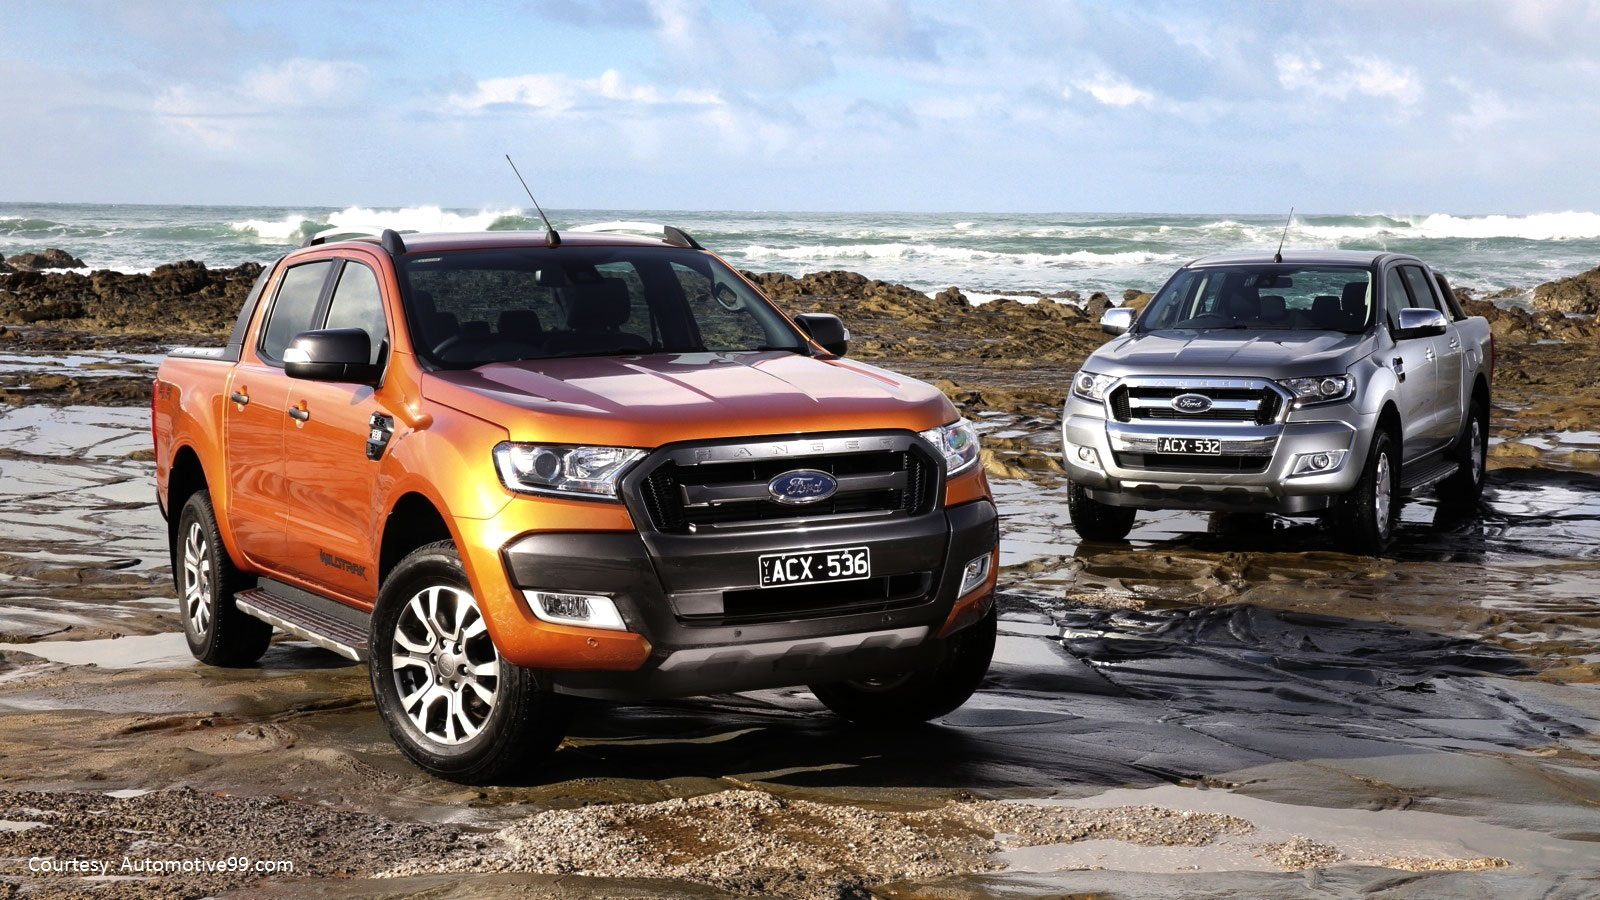 The New Ranger Will Be Less Compact Than the Old One